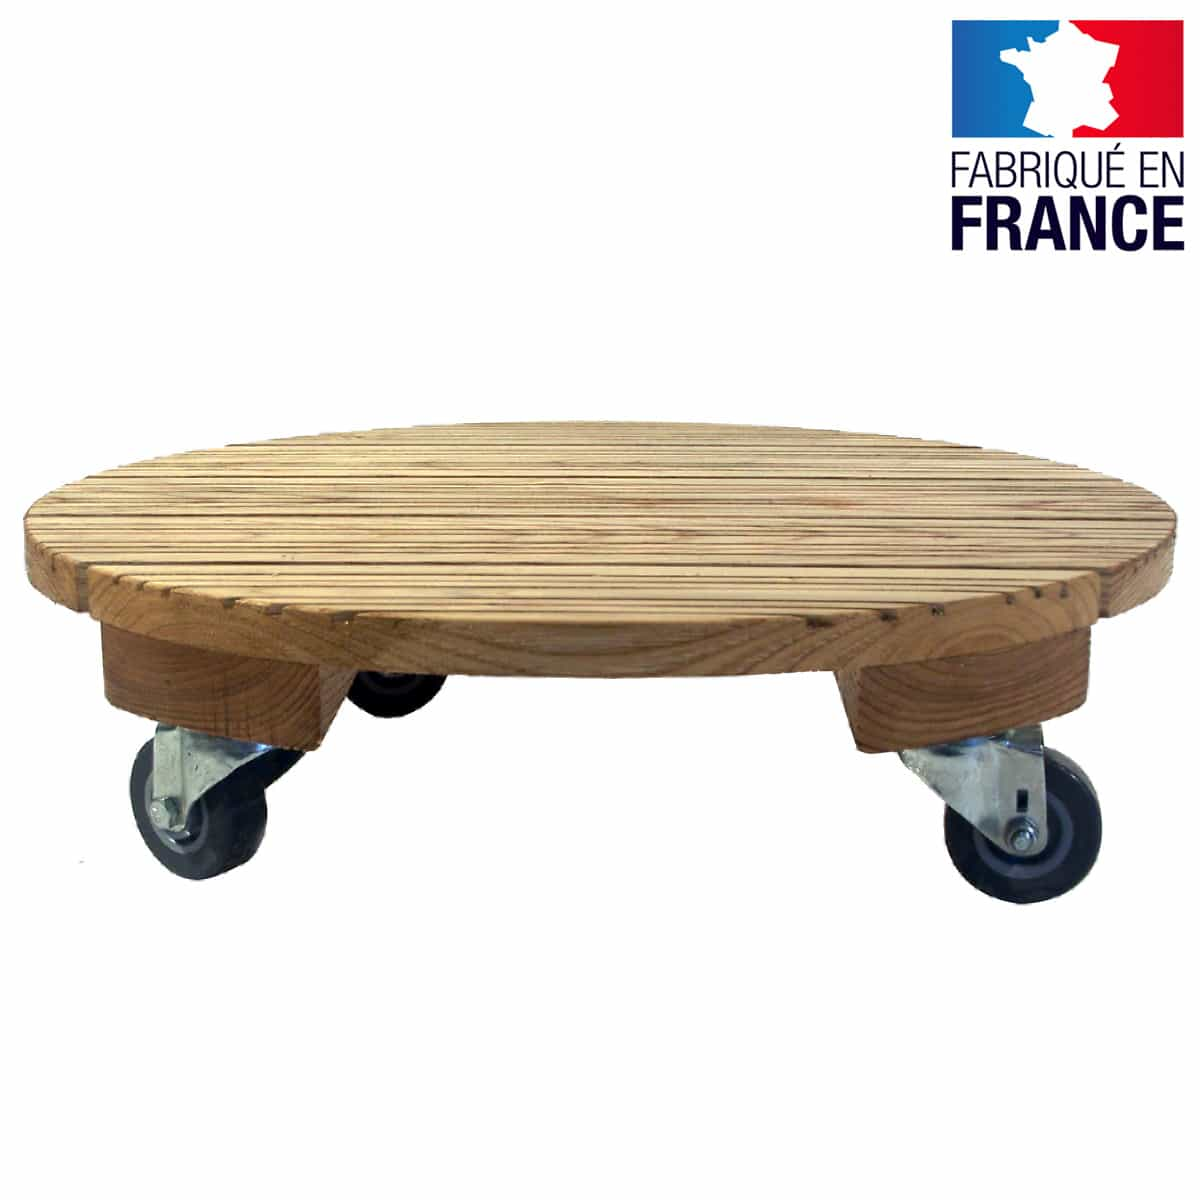 Pot Plante En Bois support plante roulette : item specifics